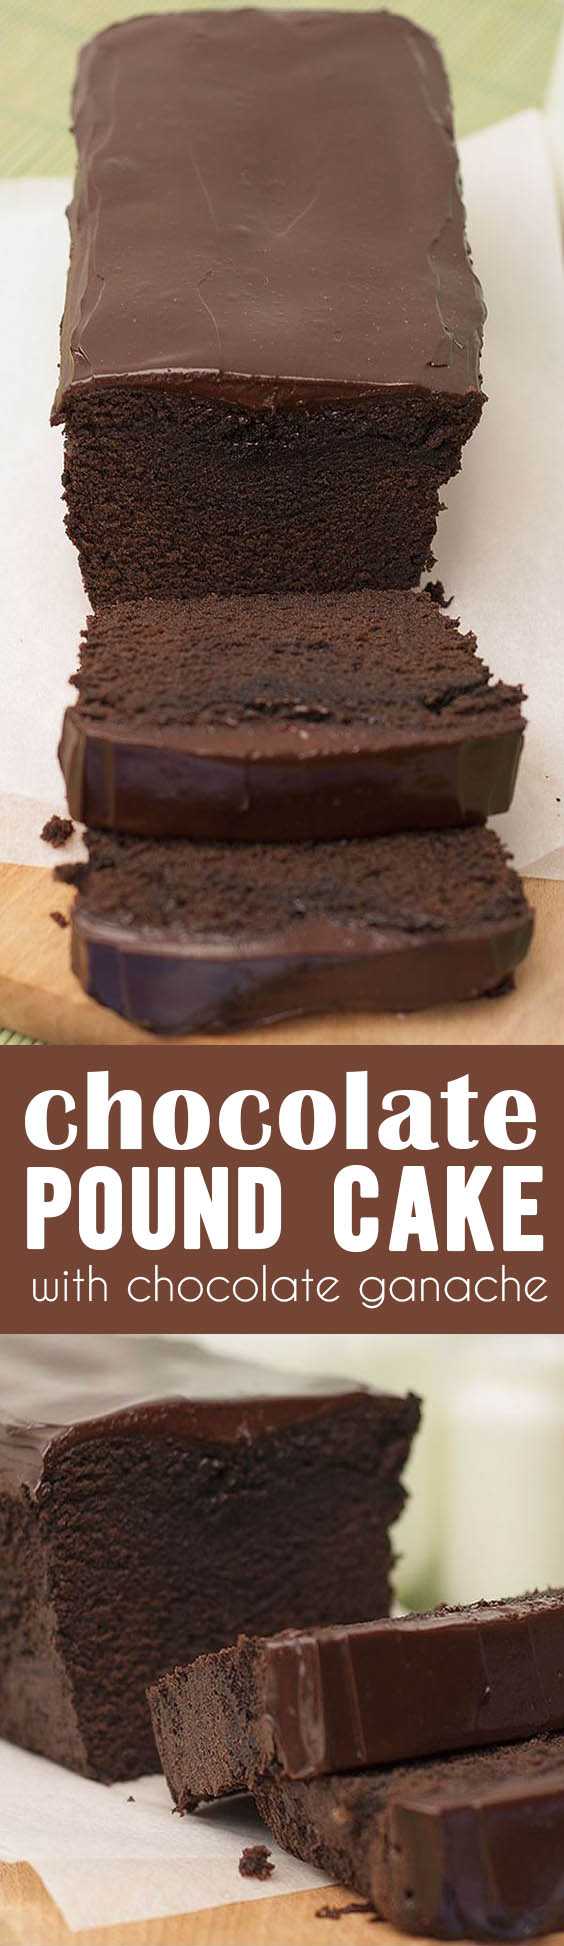 A decadent Chocolate Pound Cake topped with an even more decadent chocolate ganache ~ it's the ultimate chocolate lover's dessert!